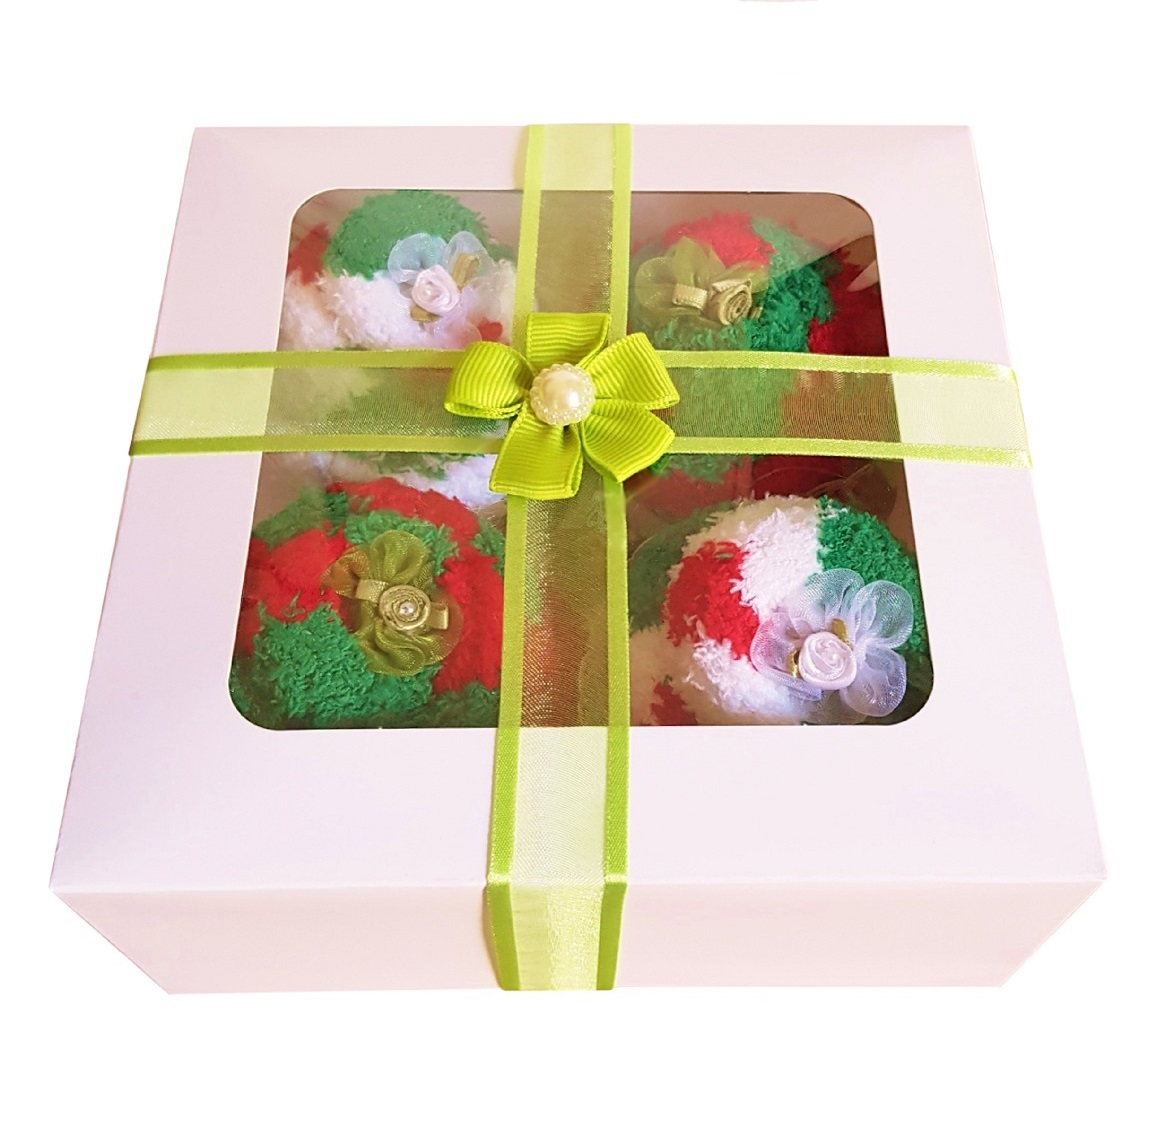 Women's ' Christmas Cozy Sock' Cupcakes, Green Ribbon Gift Box